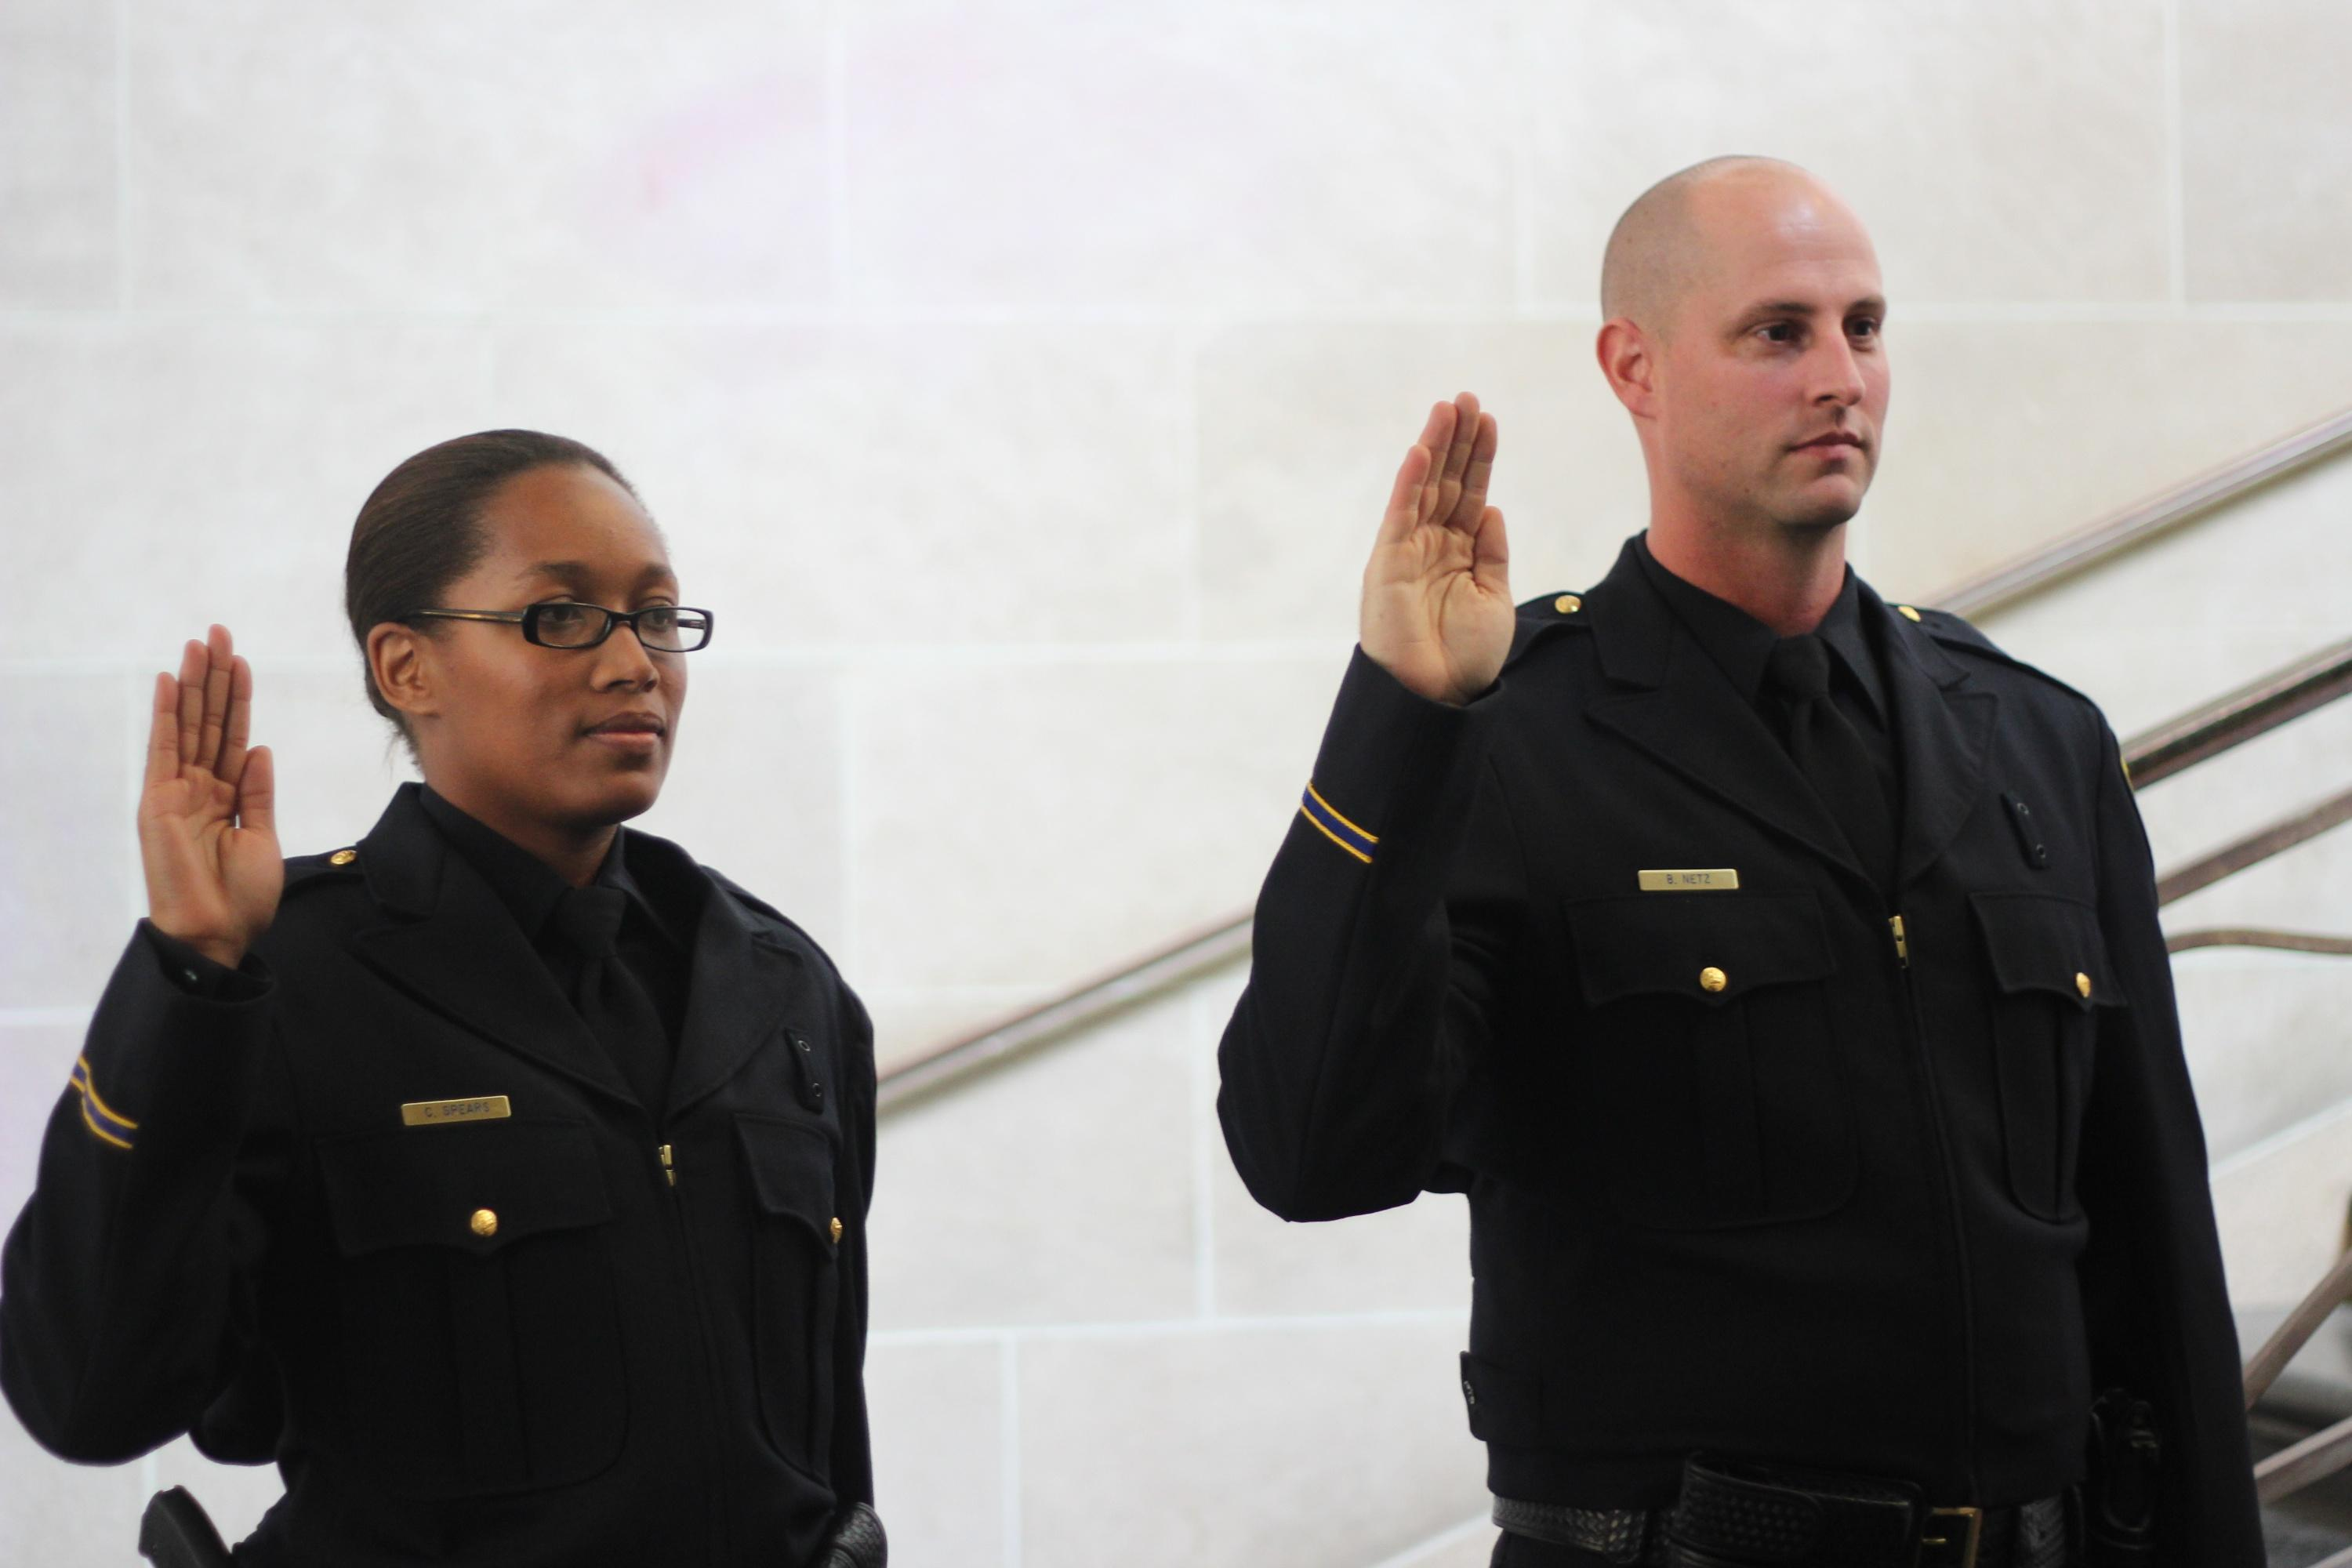 Tips for new police officers